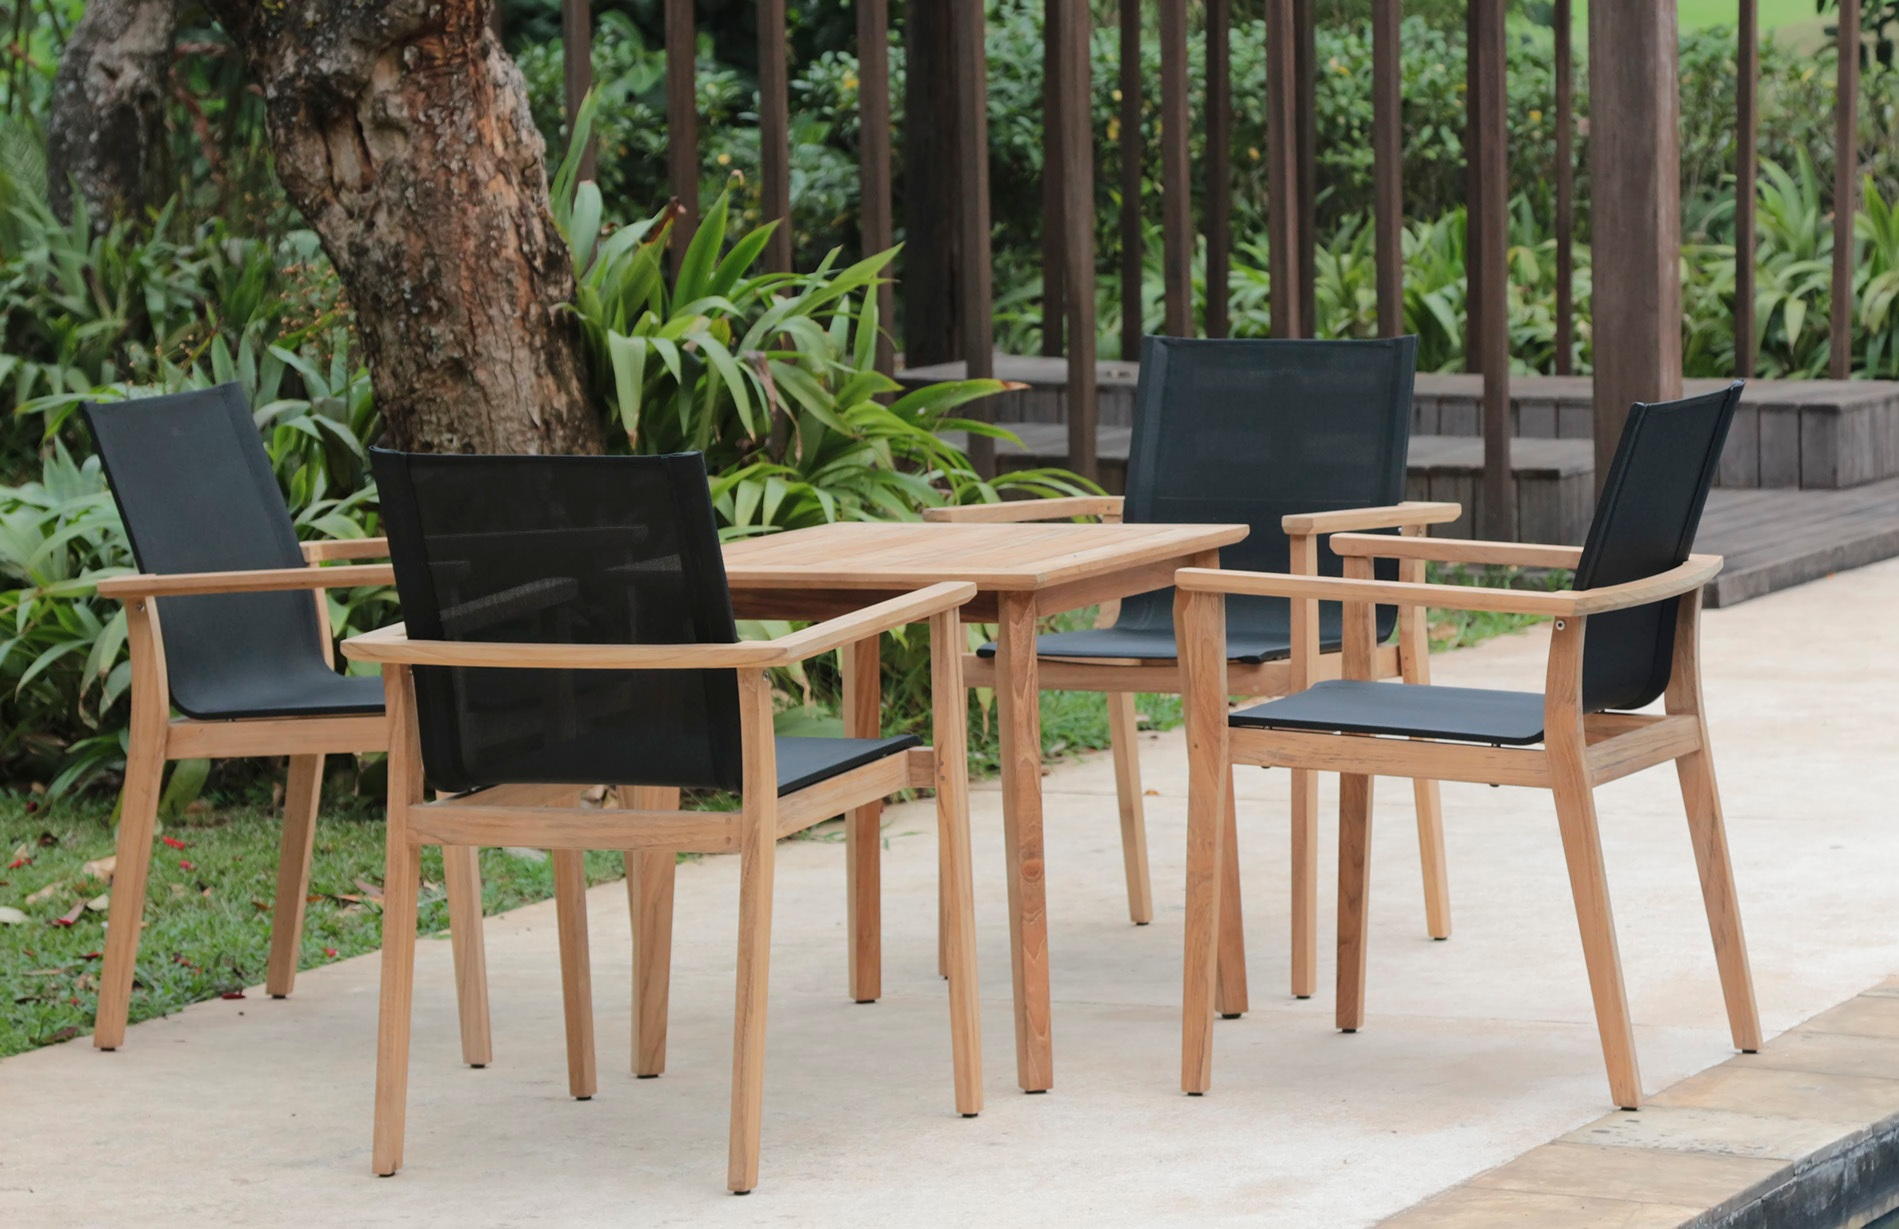 MAYA DINING CHAIR (Sling) AND DINING TABLE SQUARE